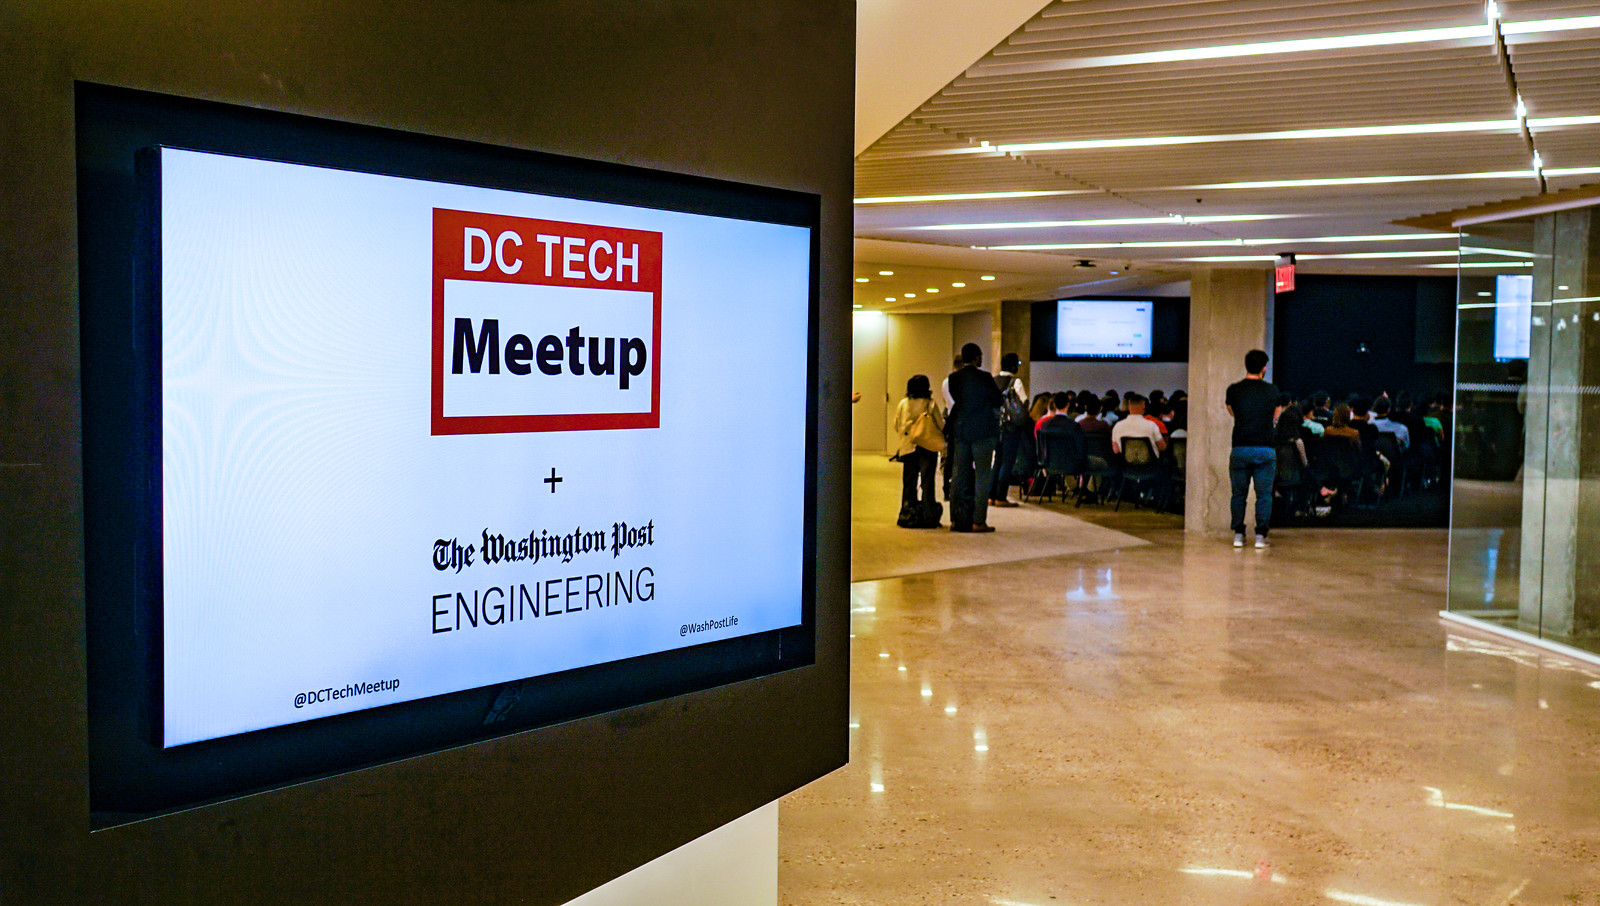 What I Learned at DC Tech Meetup